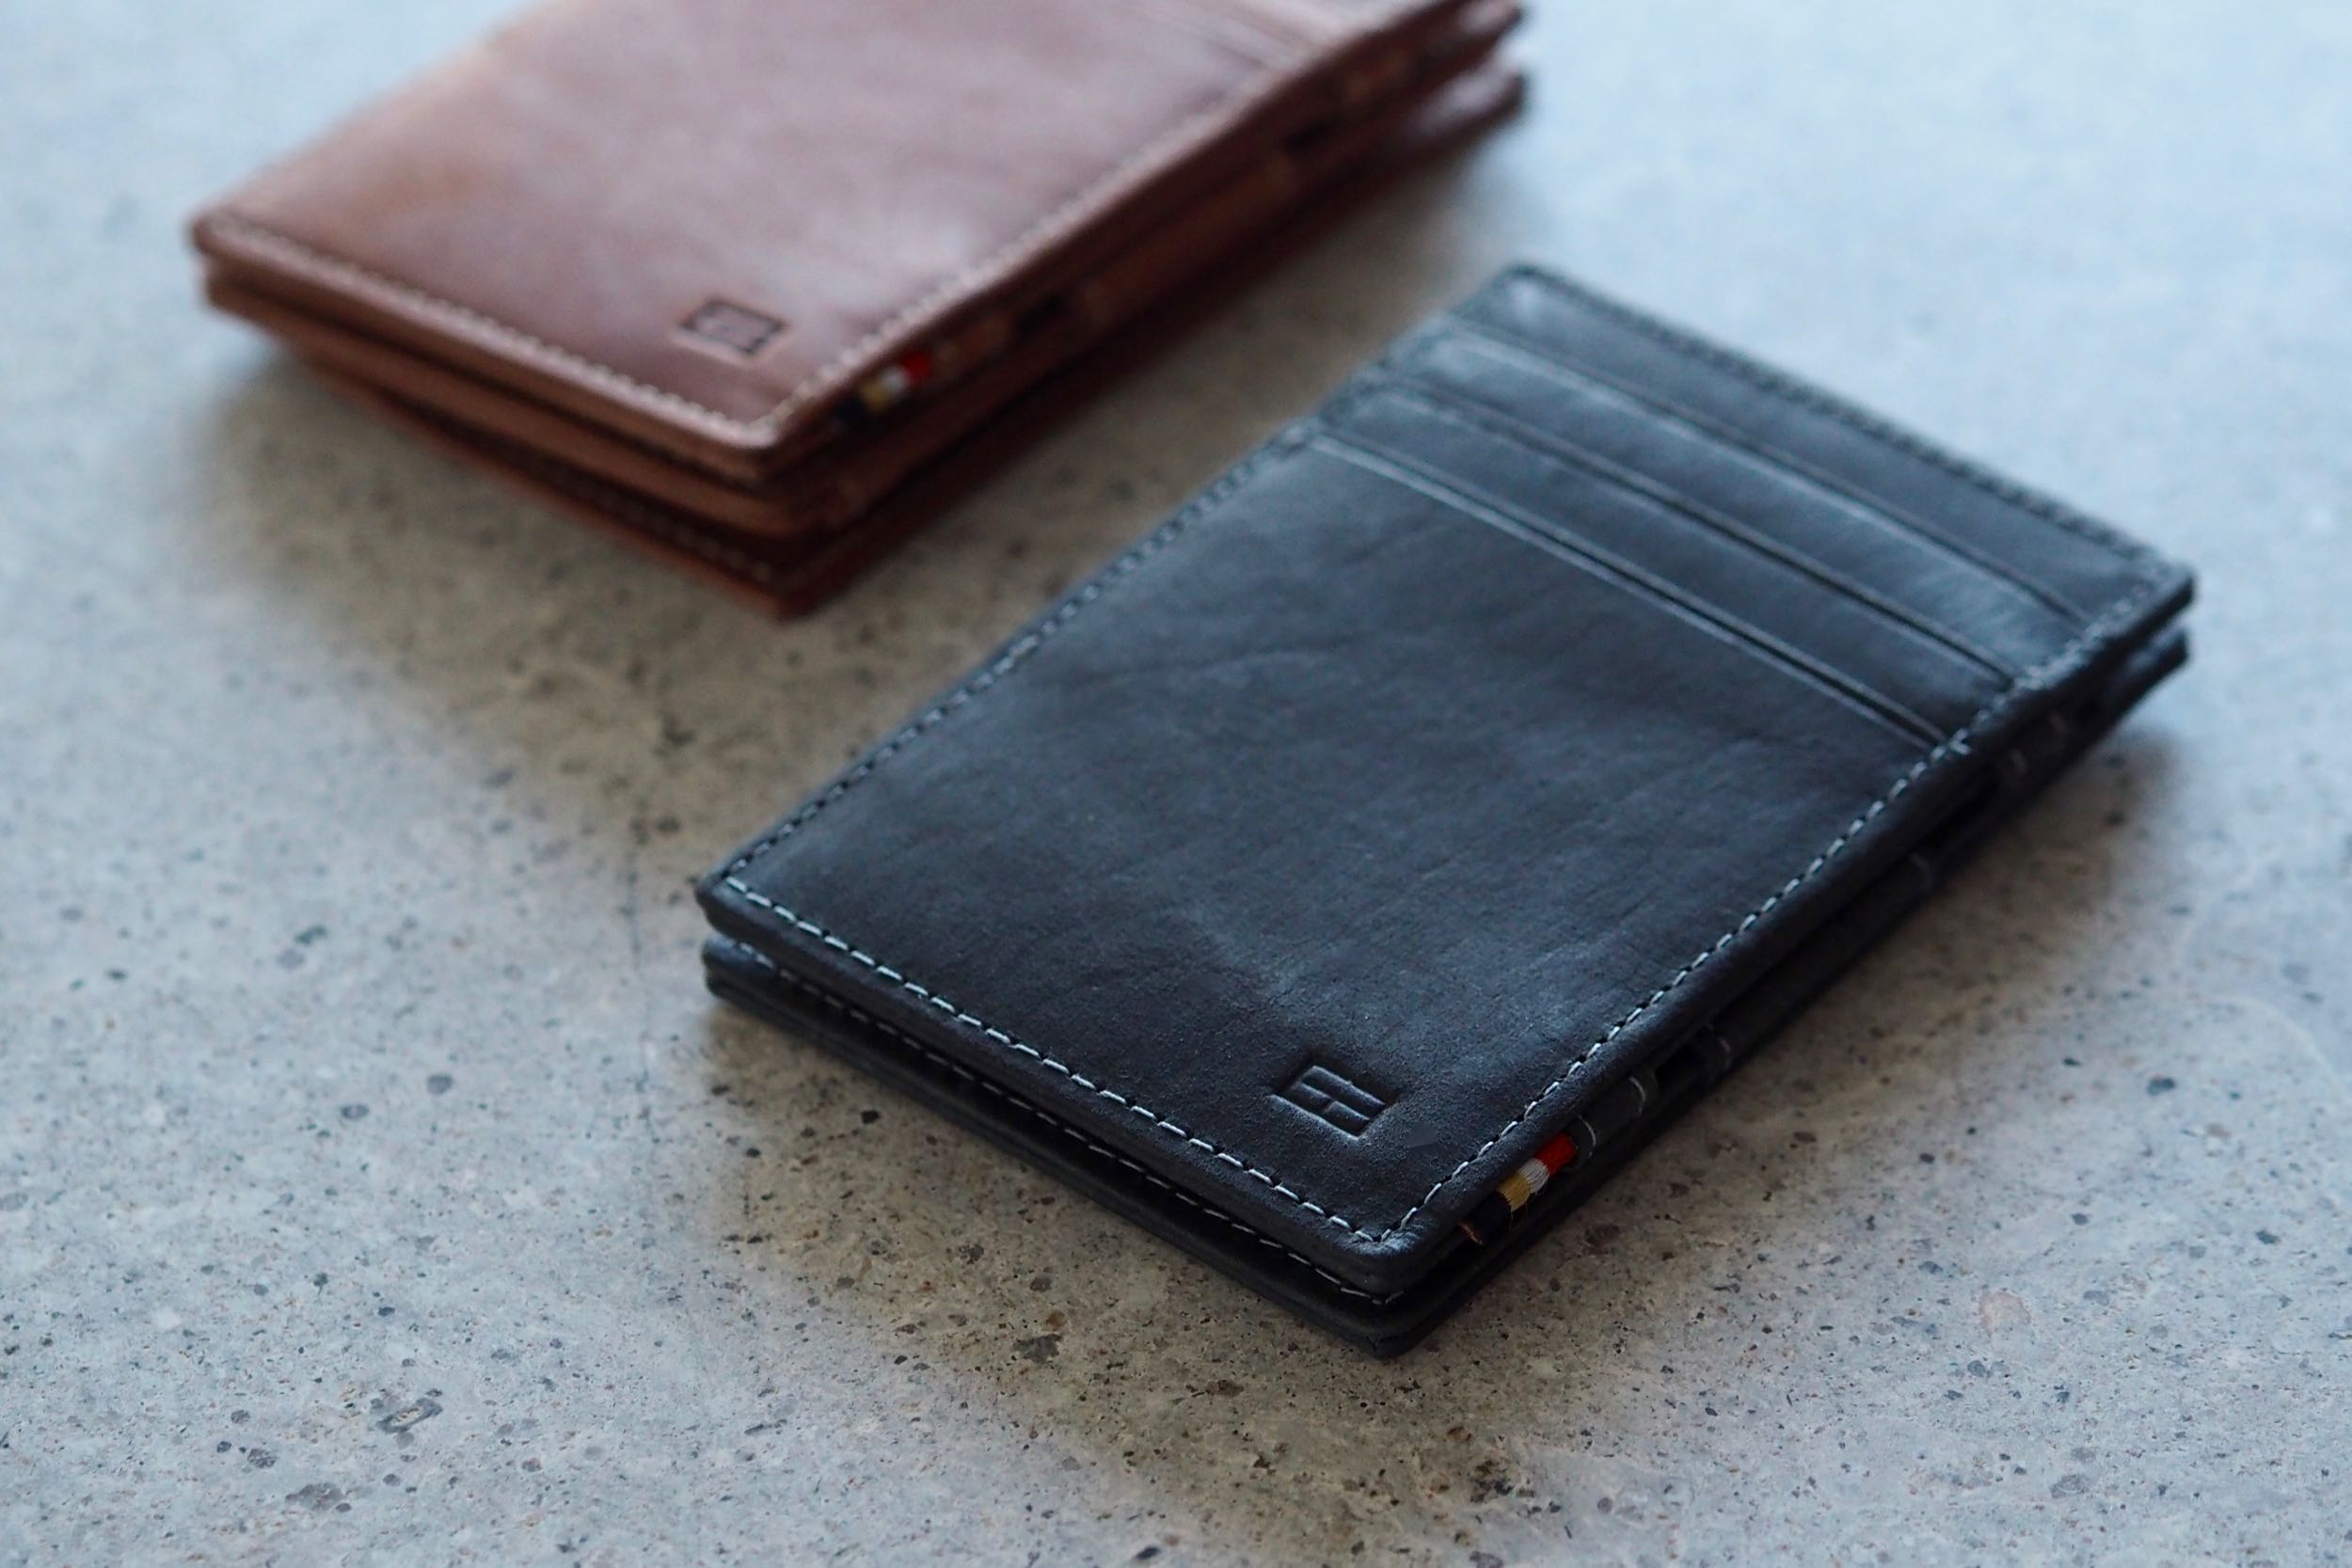 garzini slim leather wallets review hey gents